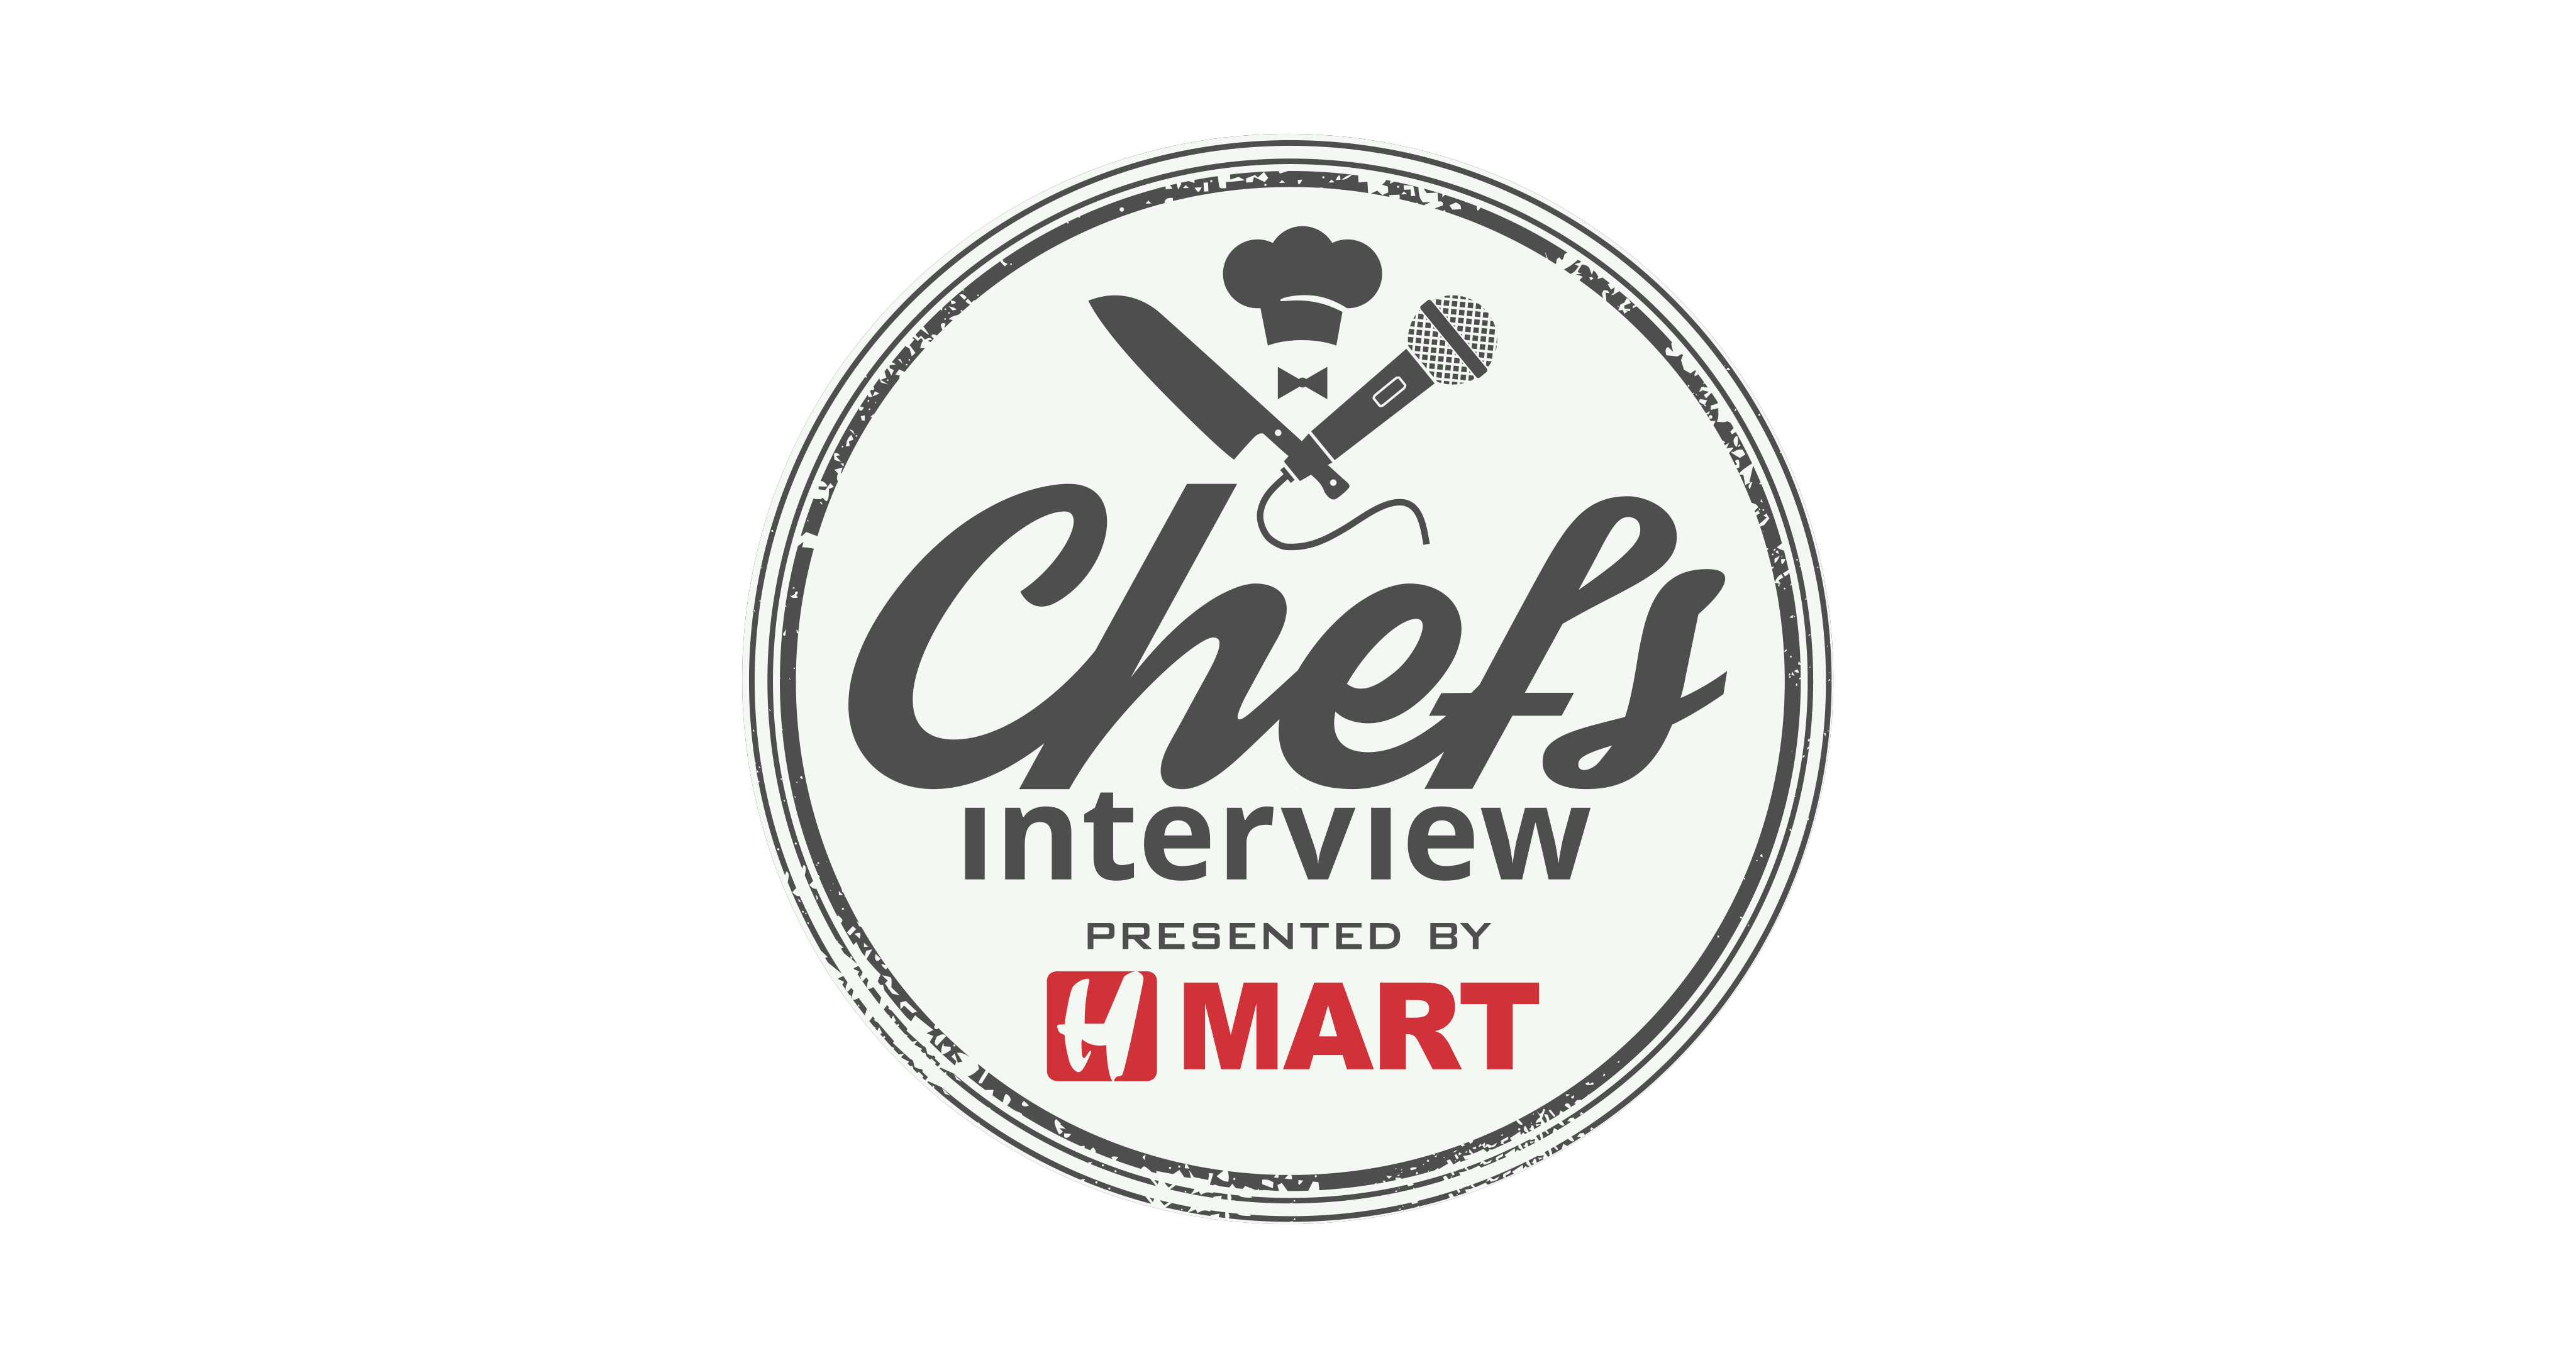 chef interview logo_co